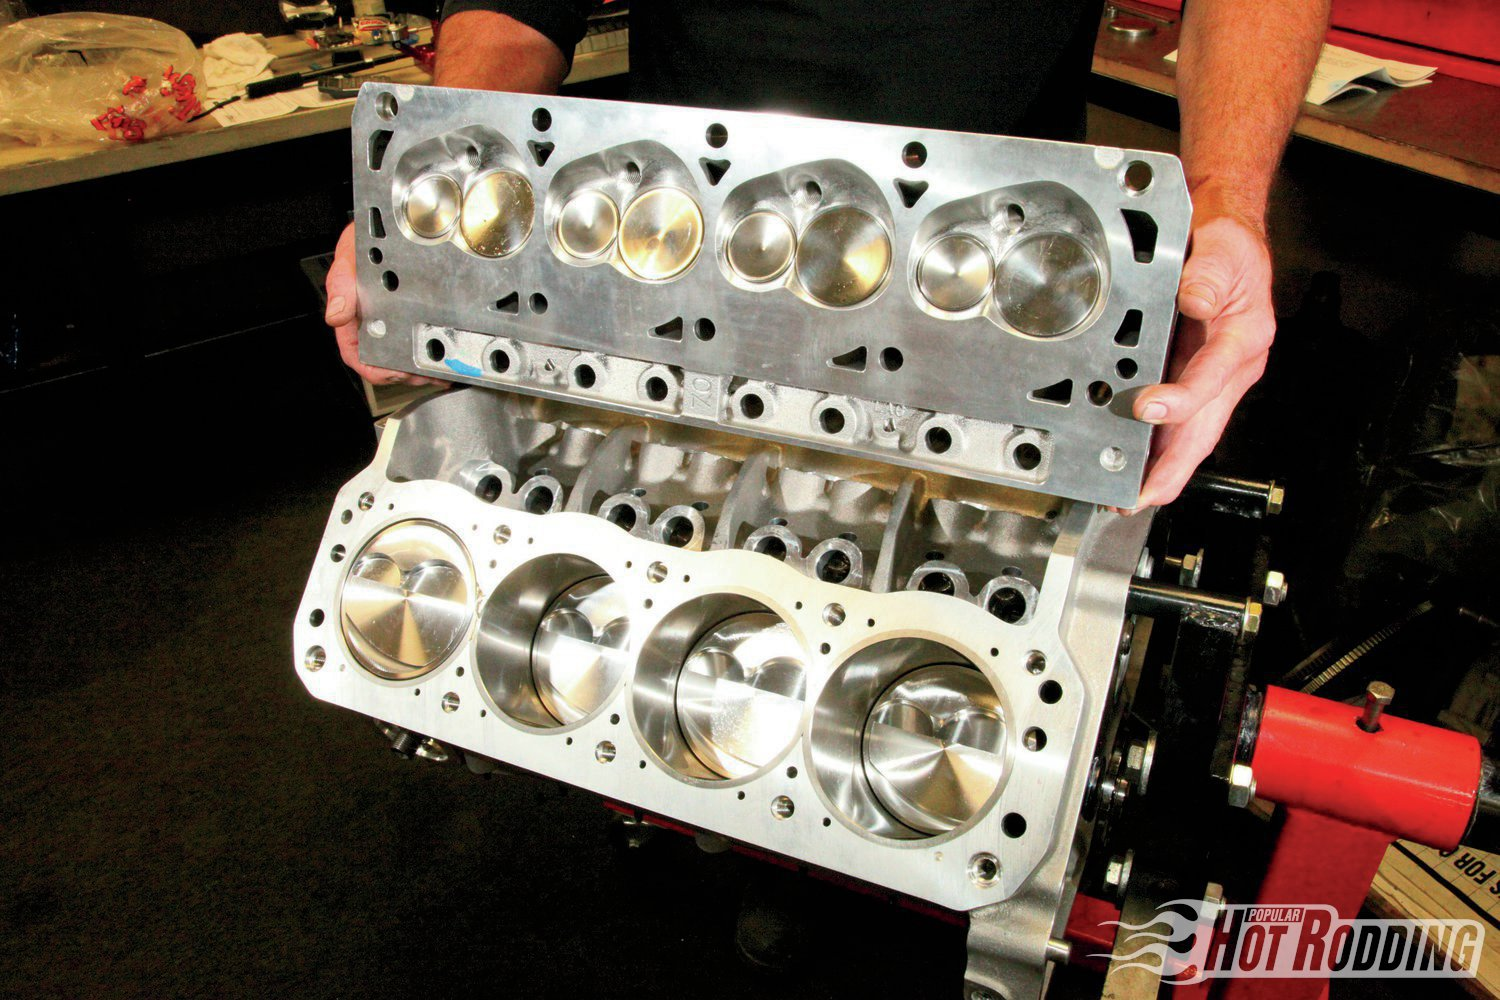 The small dome, big displacement, and compact combustion chambers of the Trick Flow cylinder heads add up to a compression ratio of 11:1. (We'll have a lot more on these killer flowing heads in our next installment.) That compression will ensure that the engine will live happily with pump gas, while the big cubes, ample airflow, and the generous cam timing are in place for serious output.